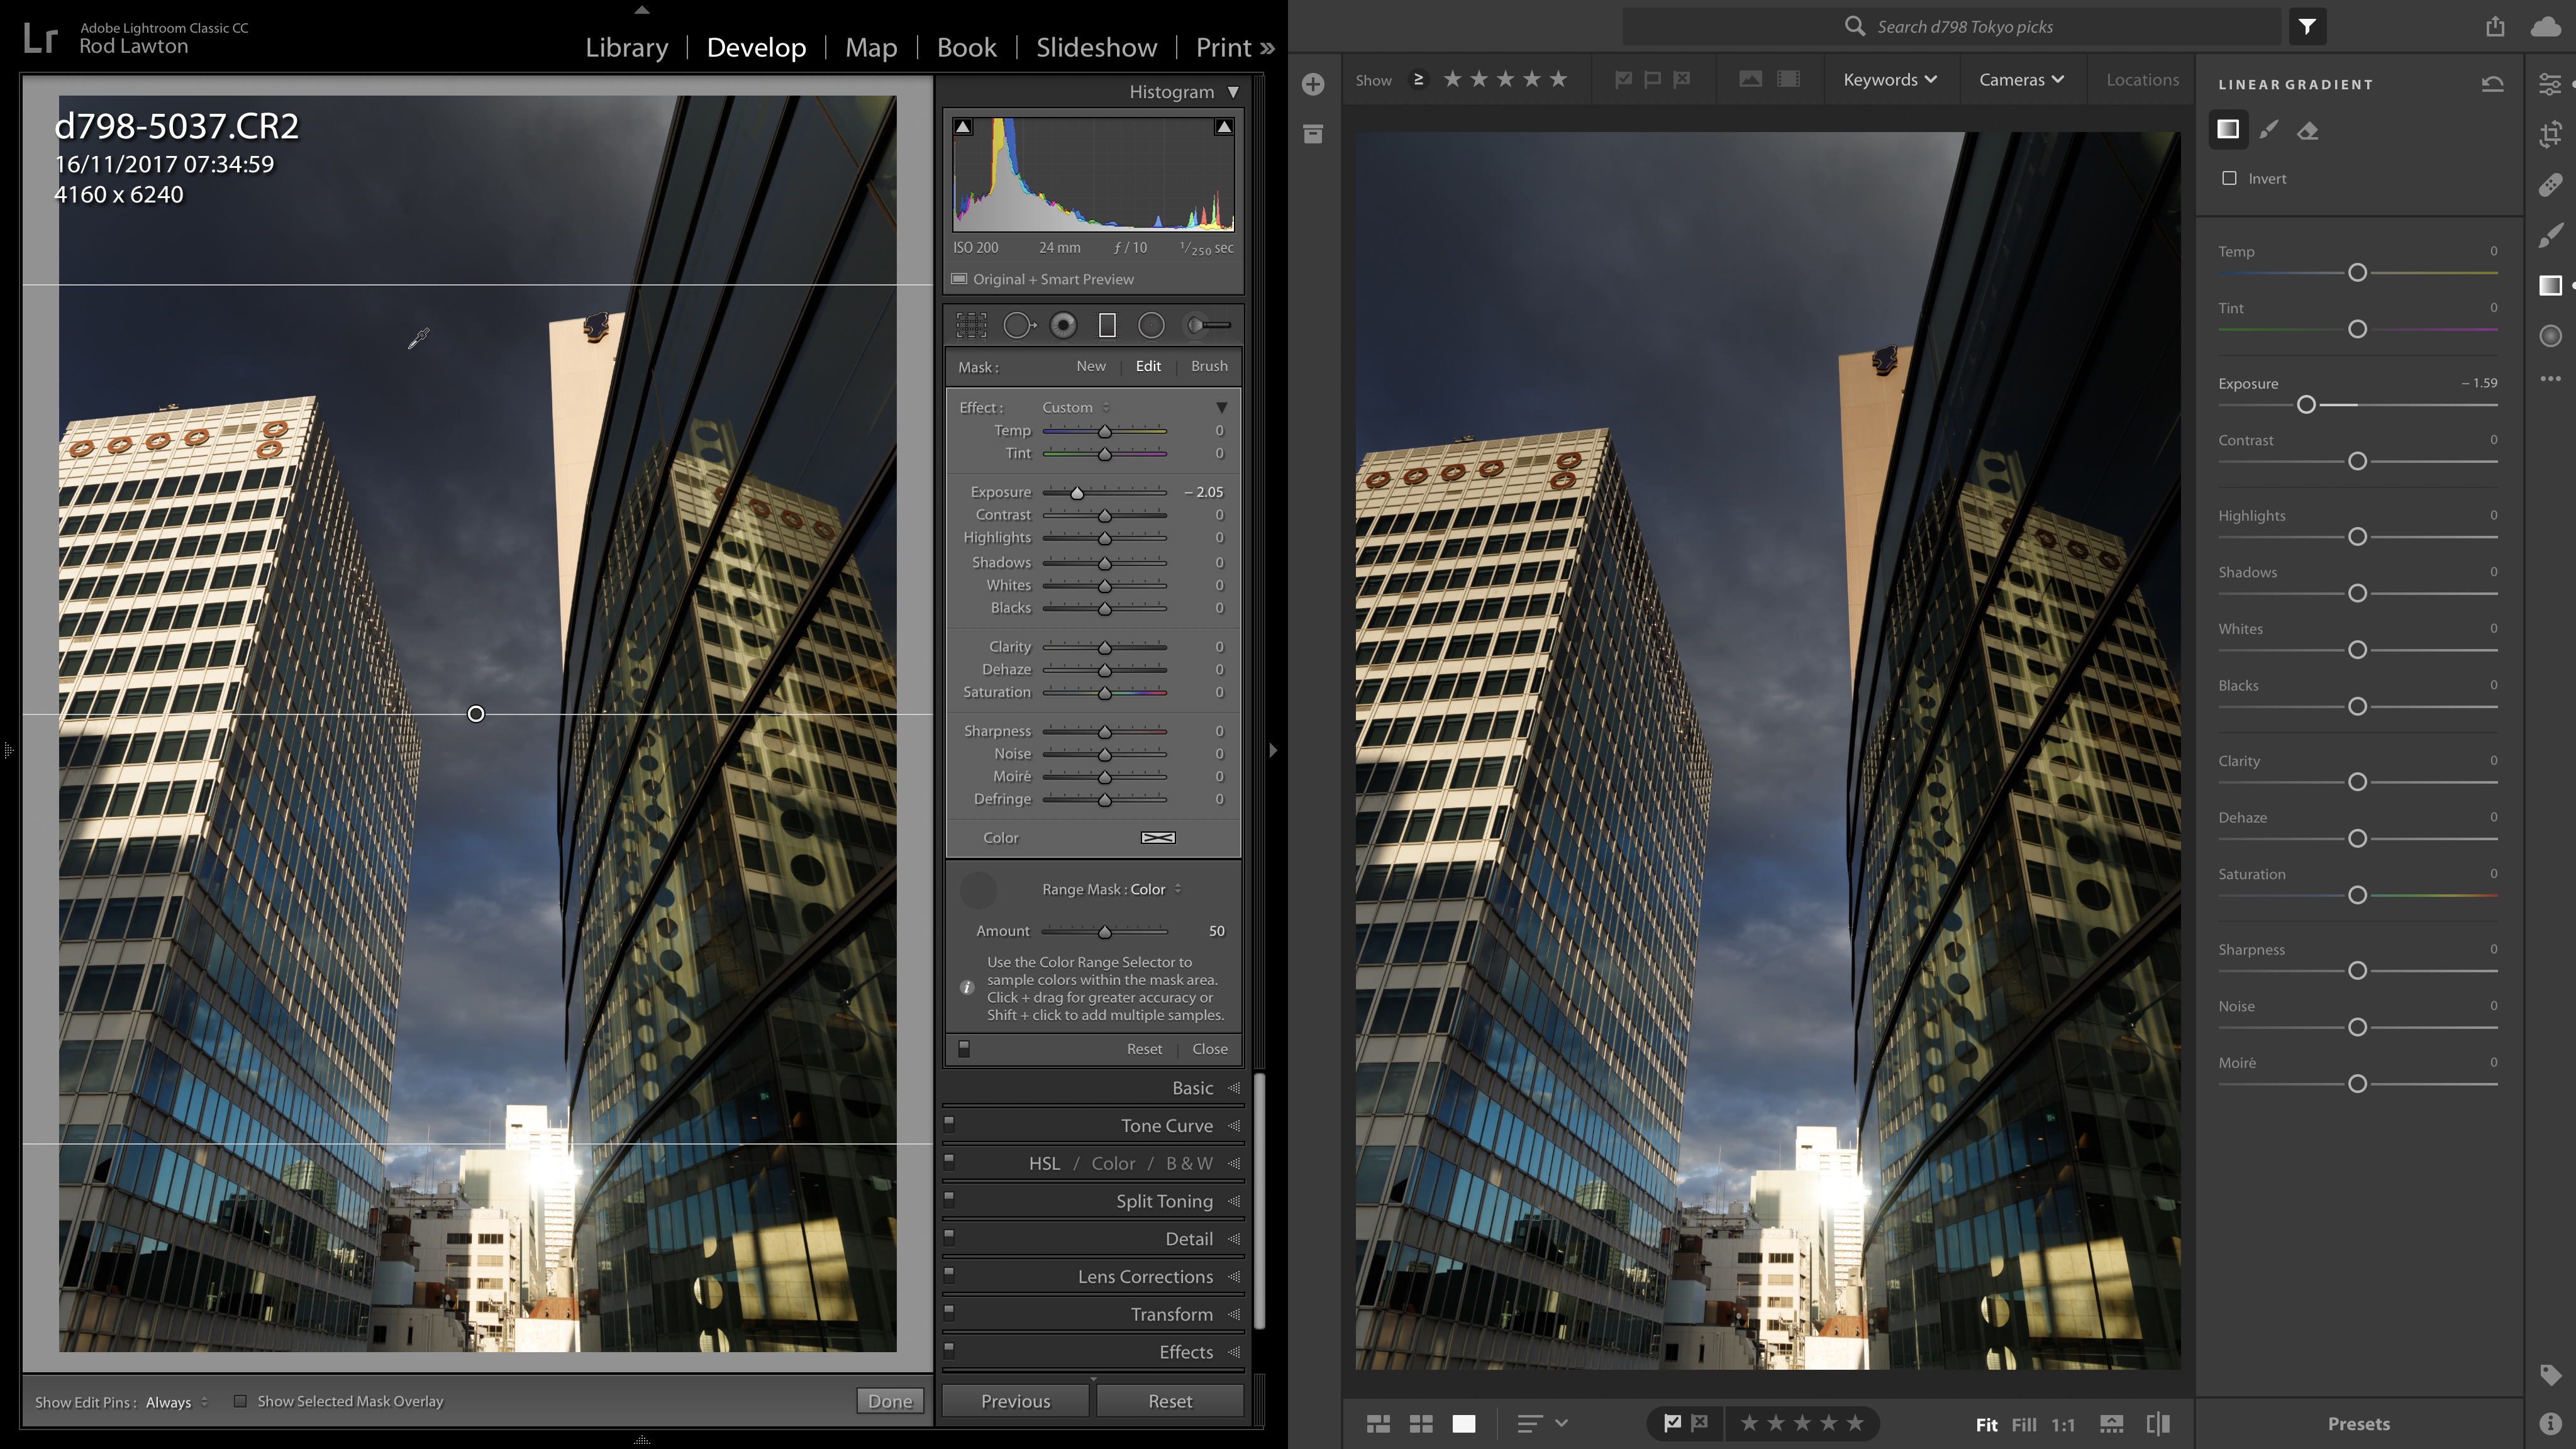 Top Lightroom Cc Vs Lightroom Classic Key Differences Techradar Lightroom Previews Performance Lightroom Previews Vs Previews dpreview Lightroom Smart Previews